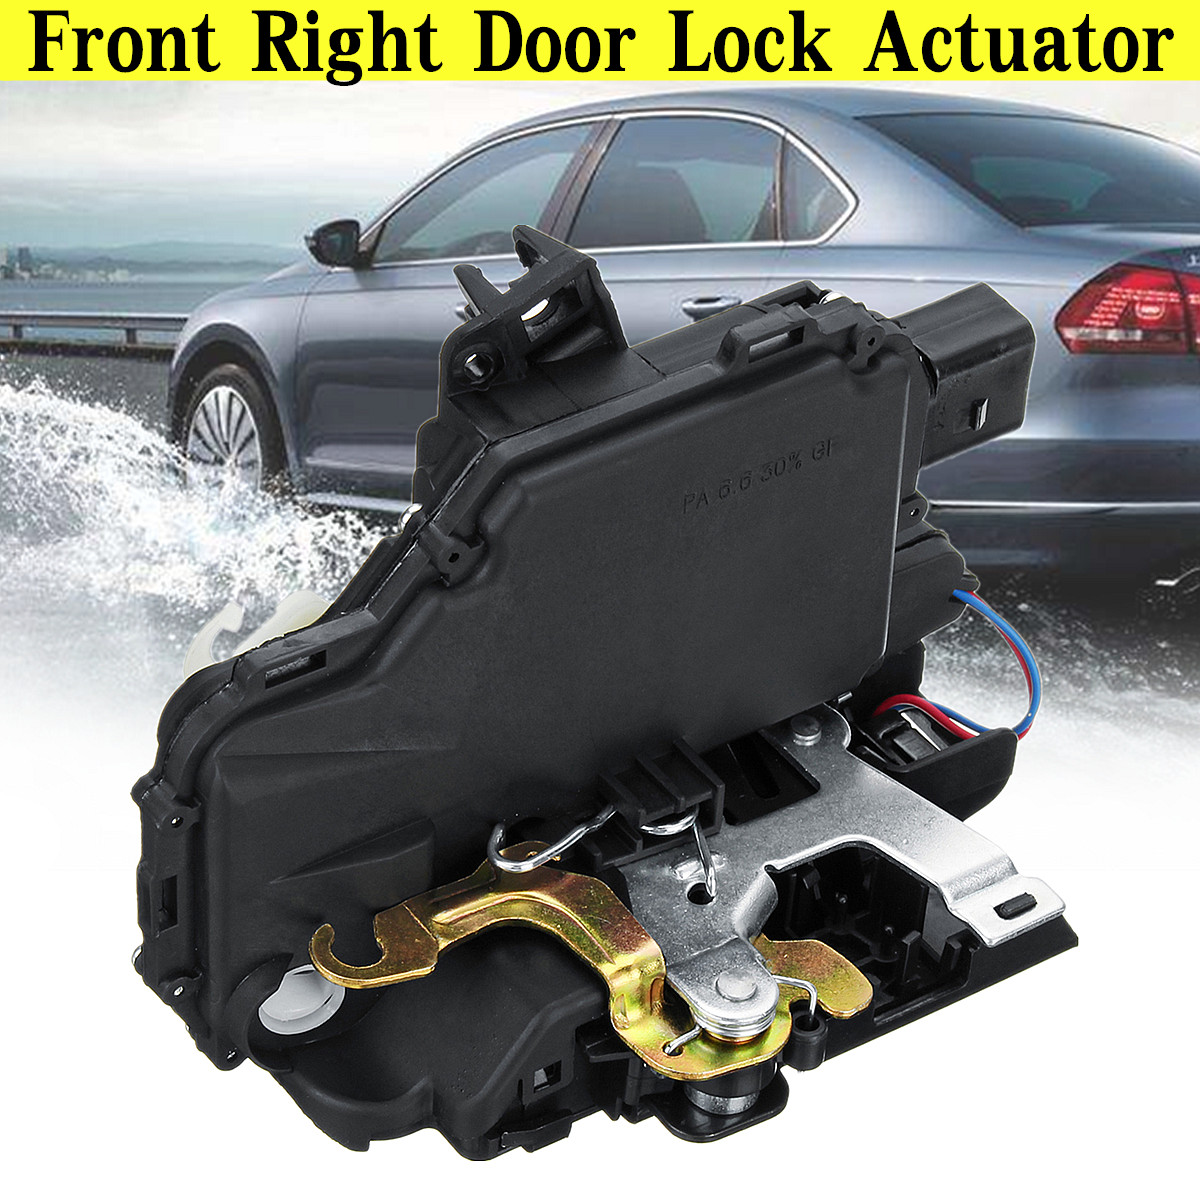 8 Pin Front Right Door Lock Latch Catch Actuator For VW GOLF MK4 PASSAT B5 3B1837016A Plastic/Metal 16x8x12cm Type Protective